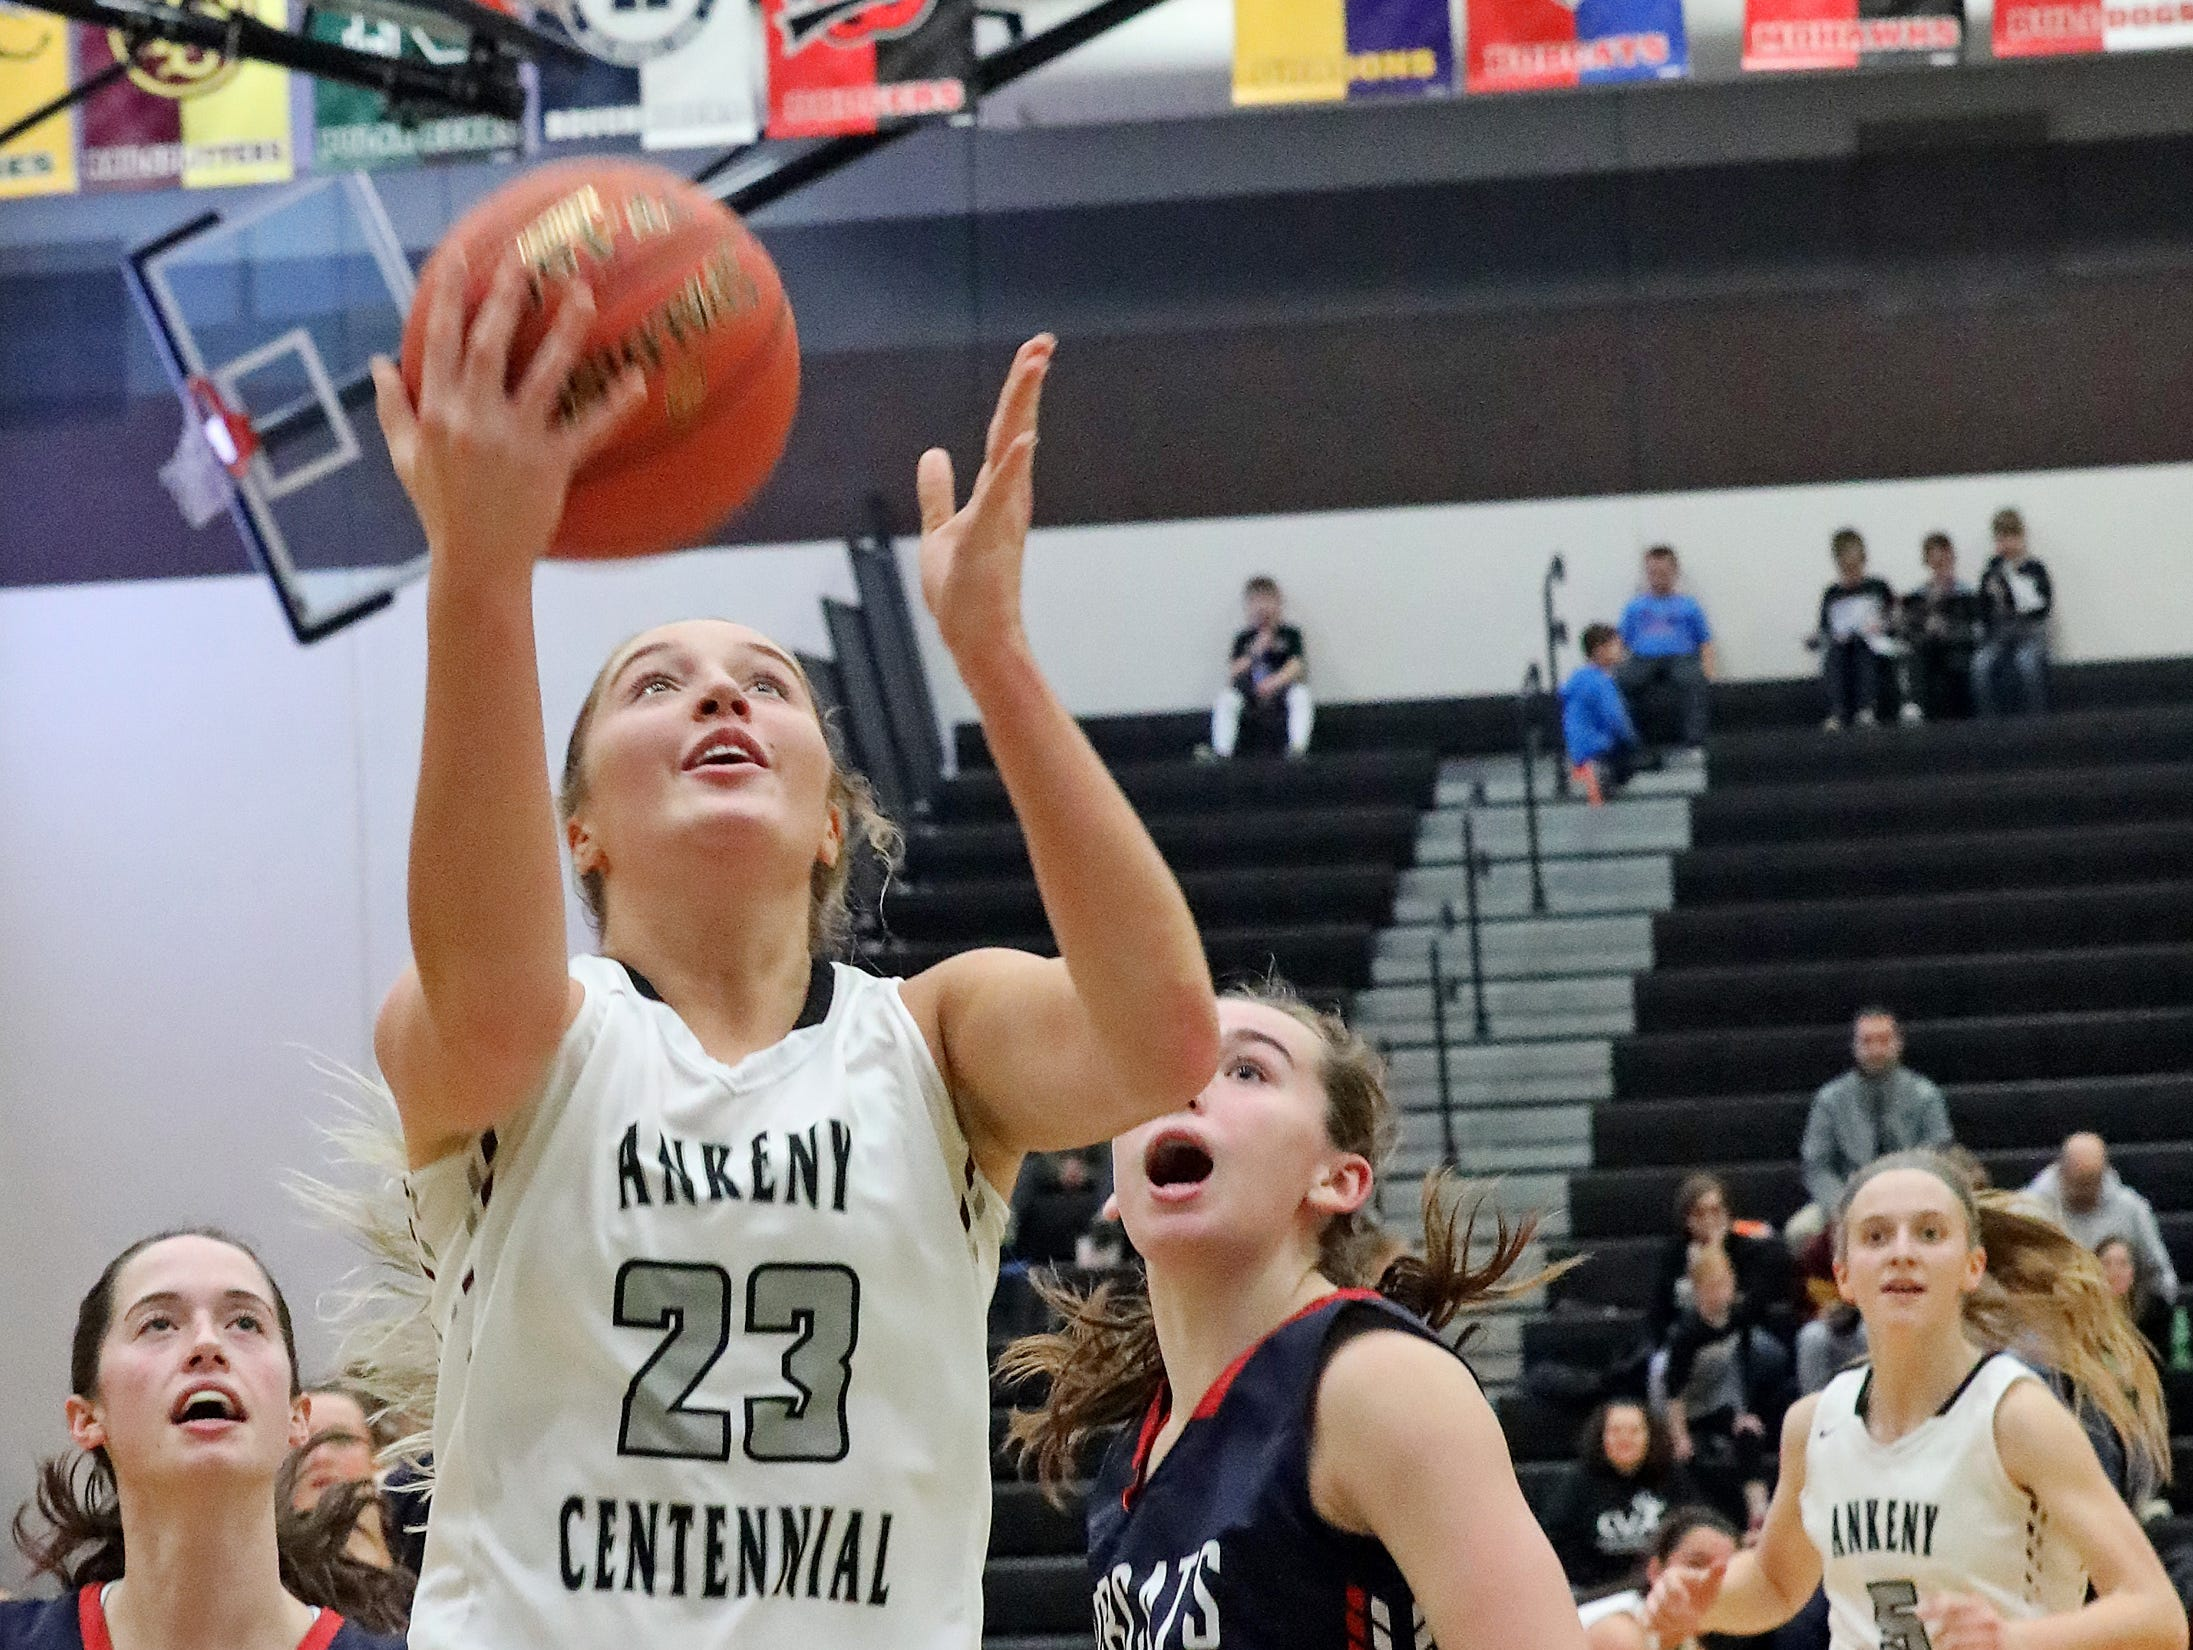 Ankeny Centennial senior Kenna Sauer attempts a lat-up as the Marshalltown Bobcats compete against the Ankeny Centennial Jaguars in high school girls basketball on Tuesday, Jan. 8, 2019 at Ankeny Centennial High School.